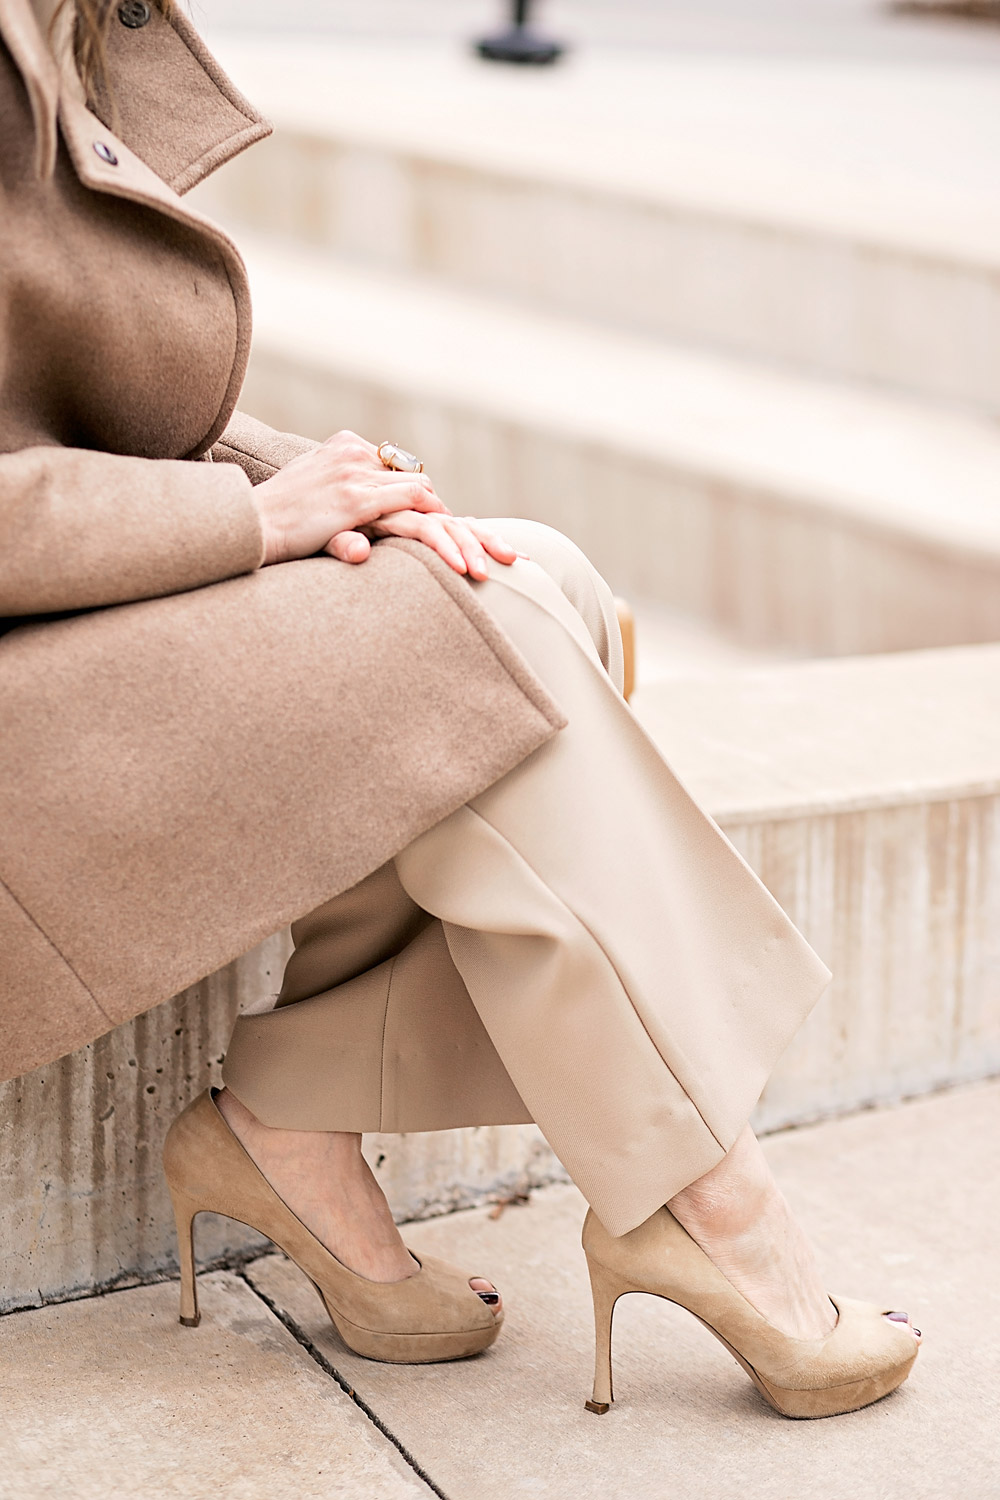 camel coat and beige coord set ysl platform heels